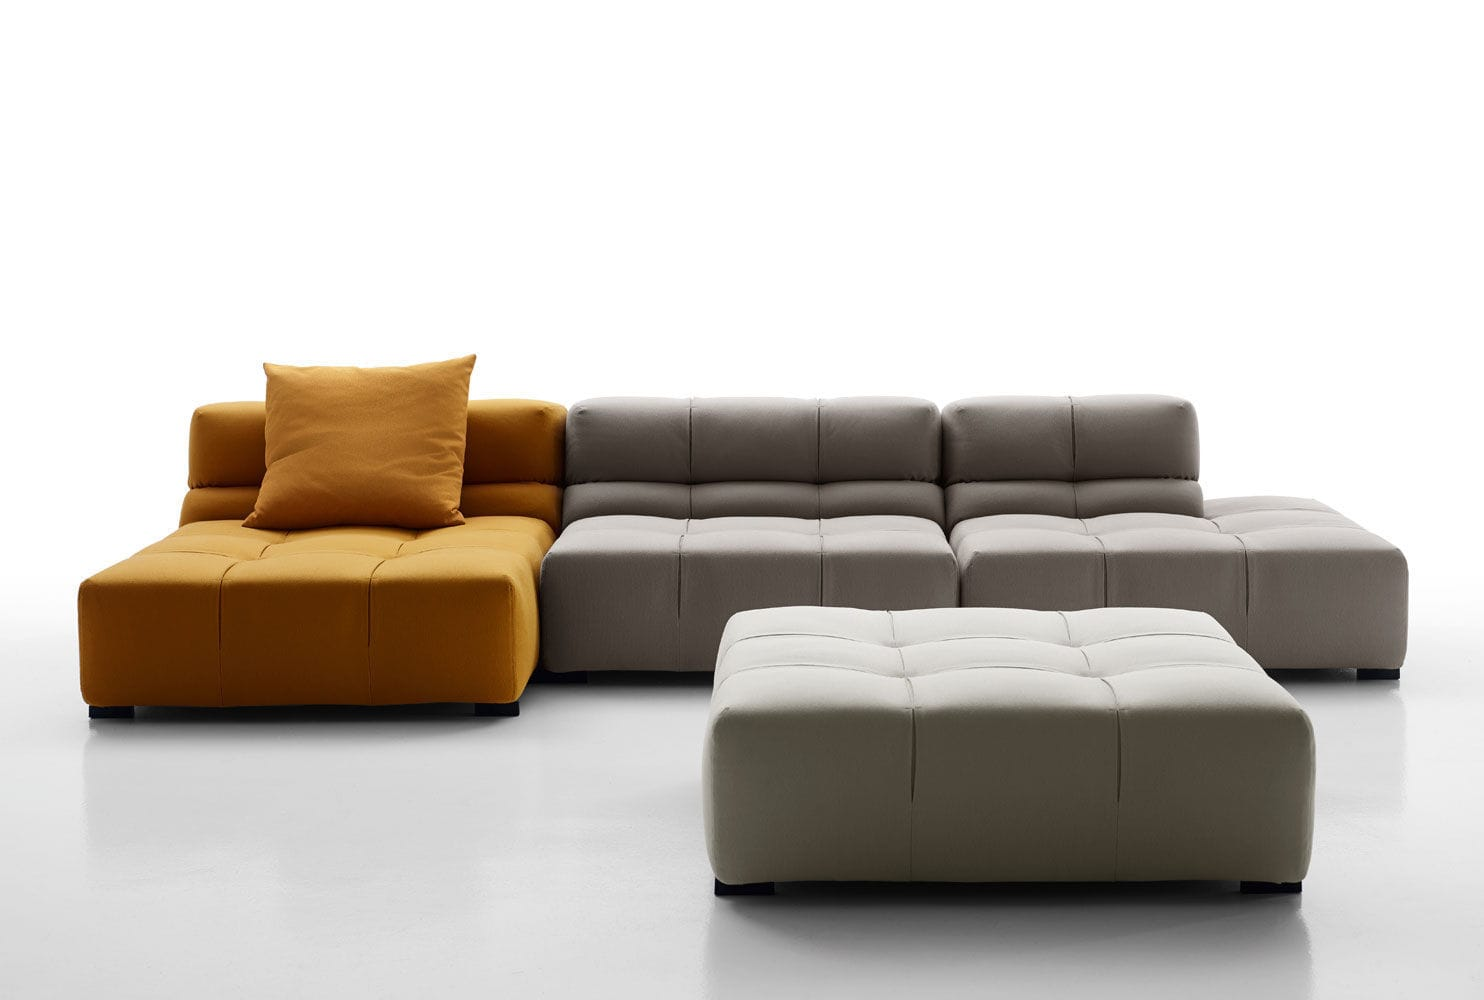 Modular Sofa Contemporary Leather Fabric Tufty Time 15